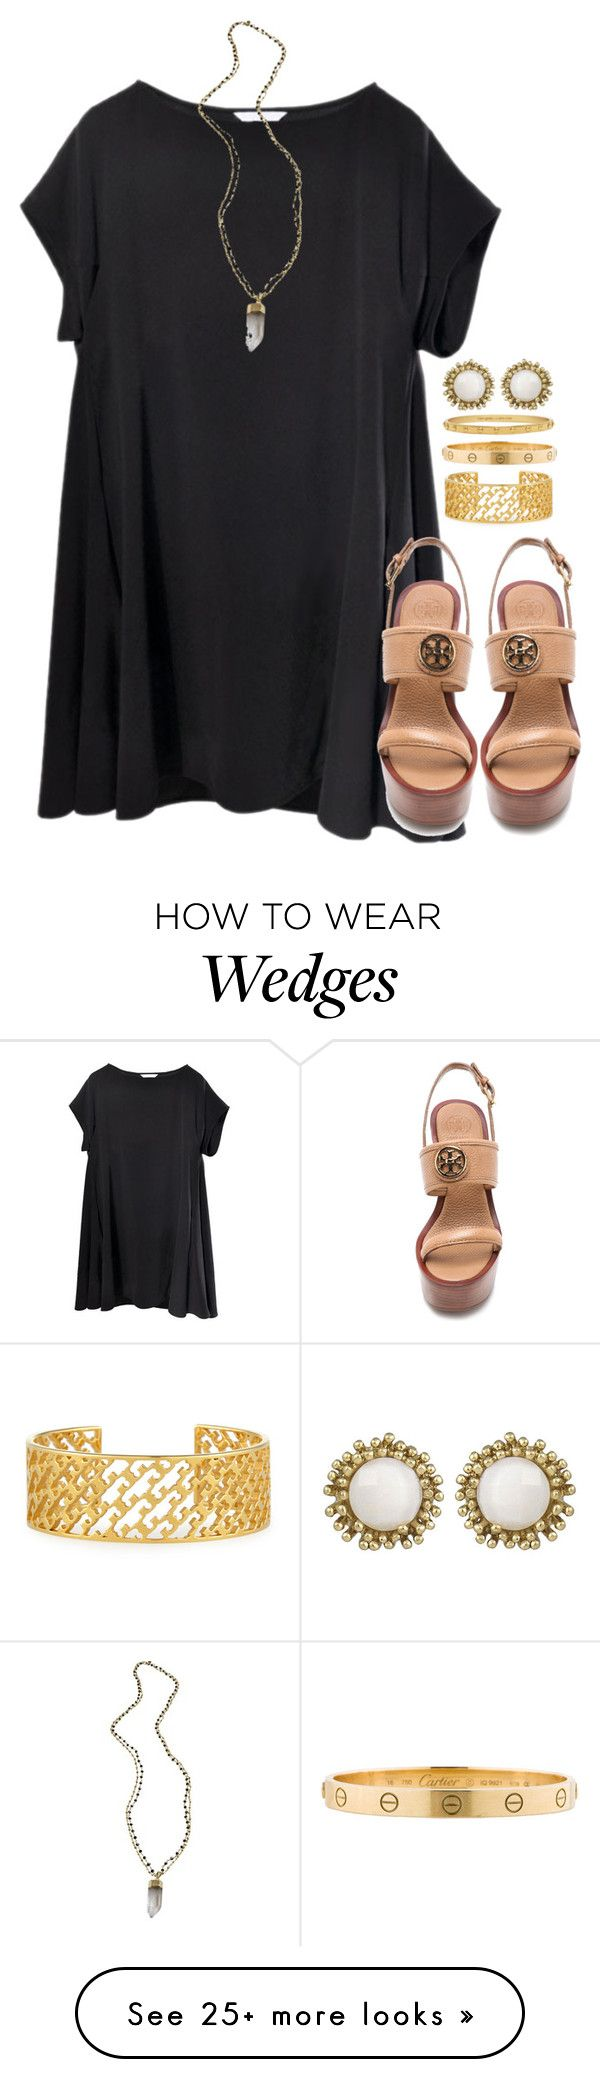 """""""hoco tomorrow"""" by tabooty on Polyvore featuring Tory Burch, Alexandra Beth Designs, Cartier, Kate Spade and Kendra Scott"""